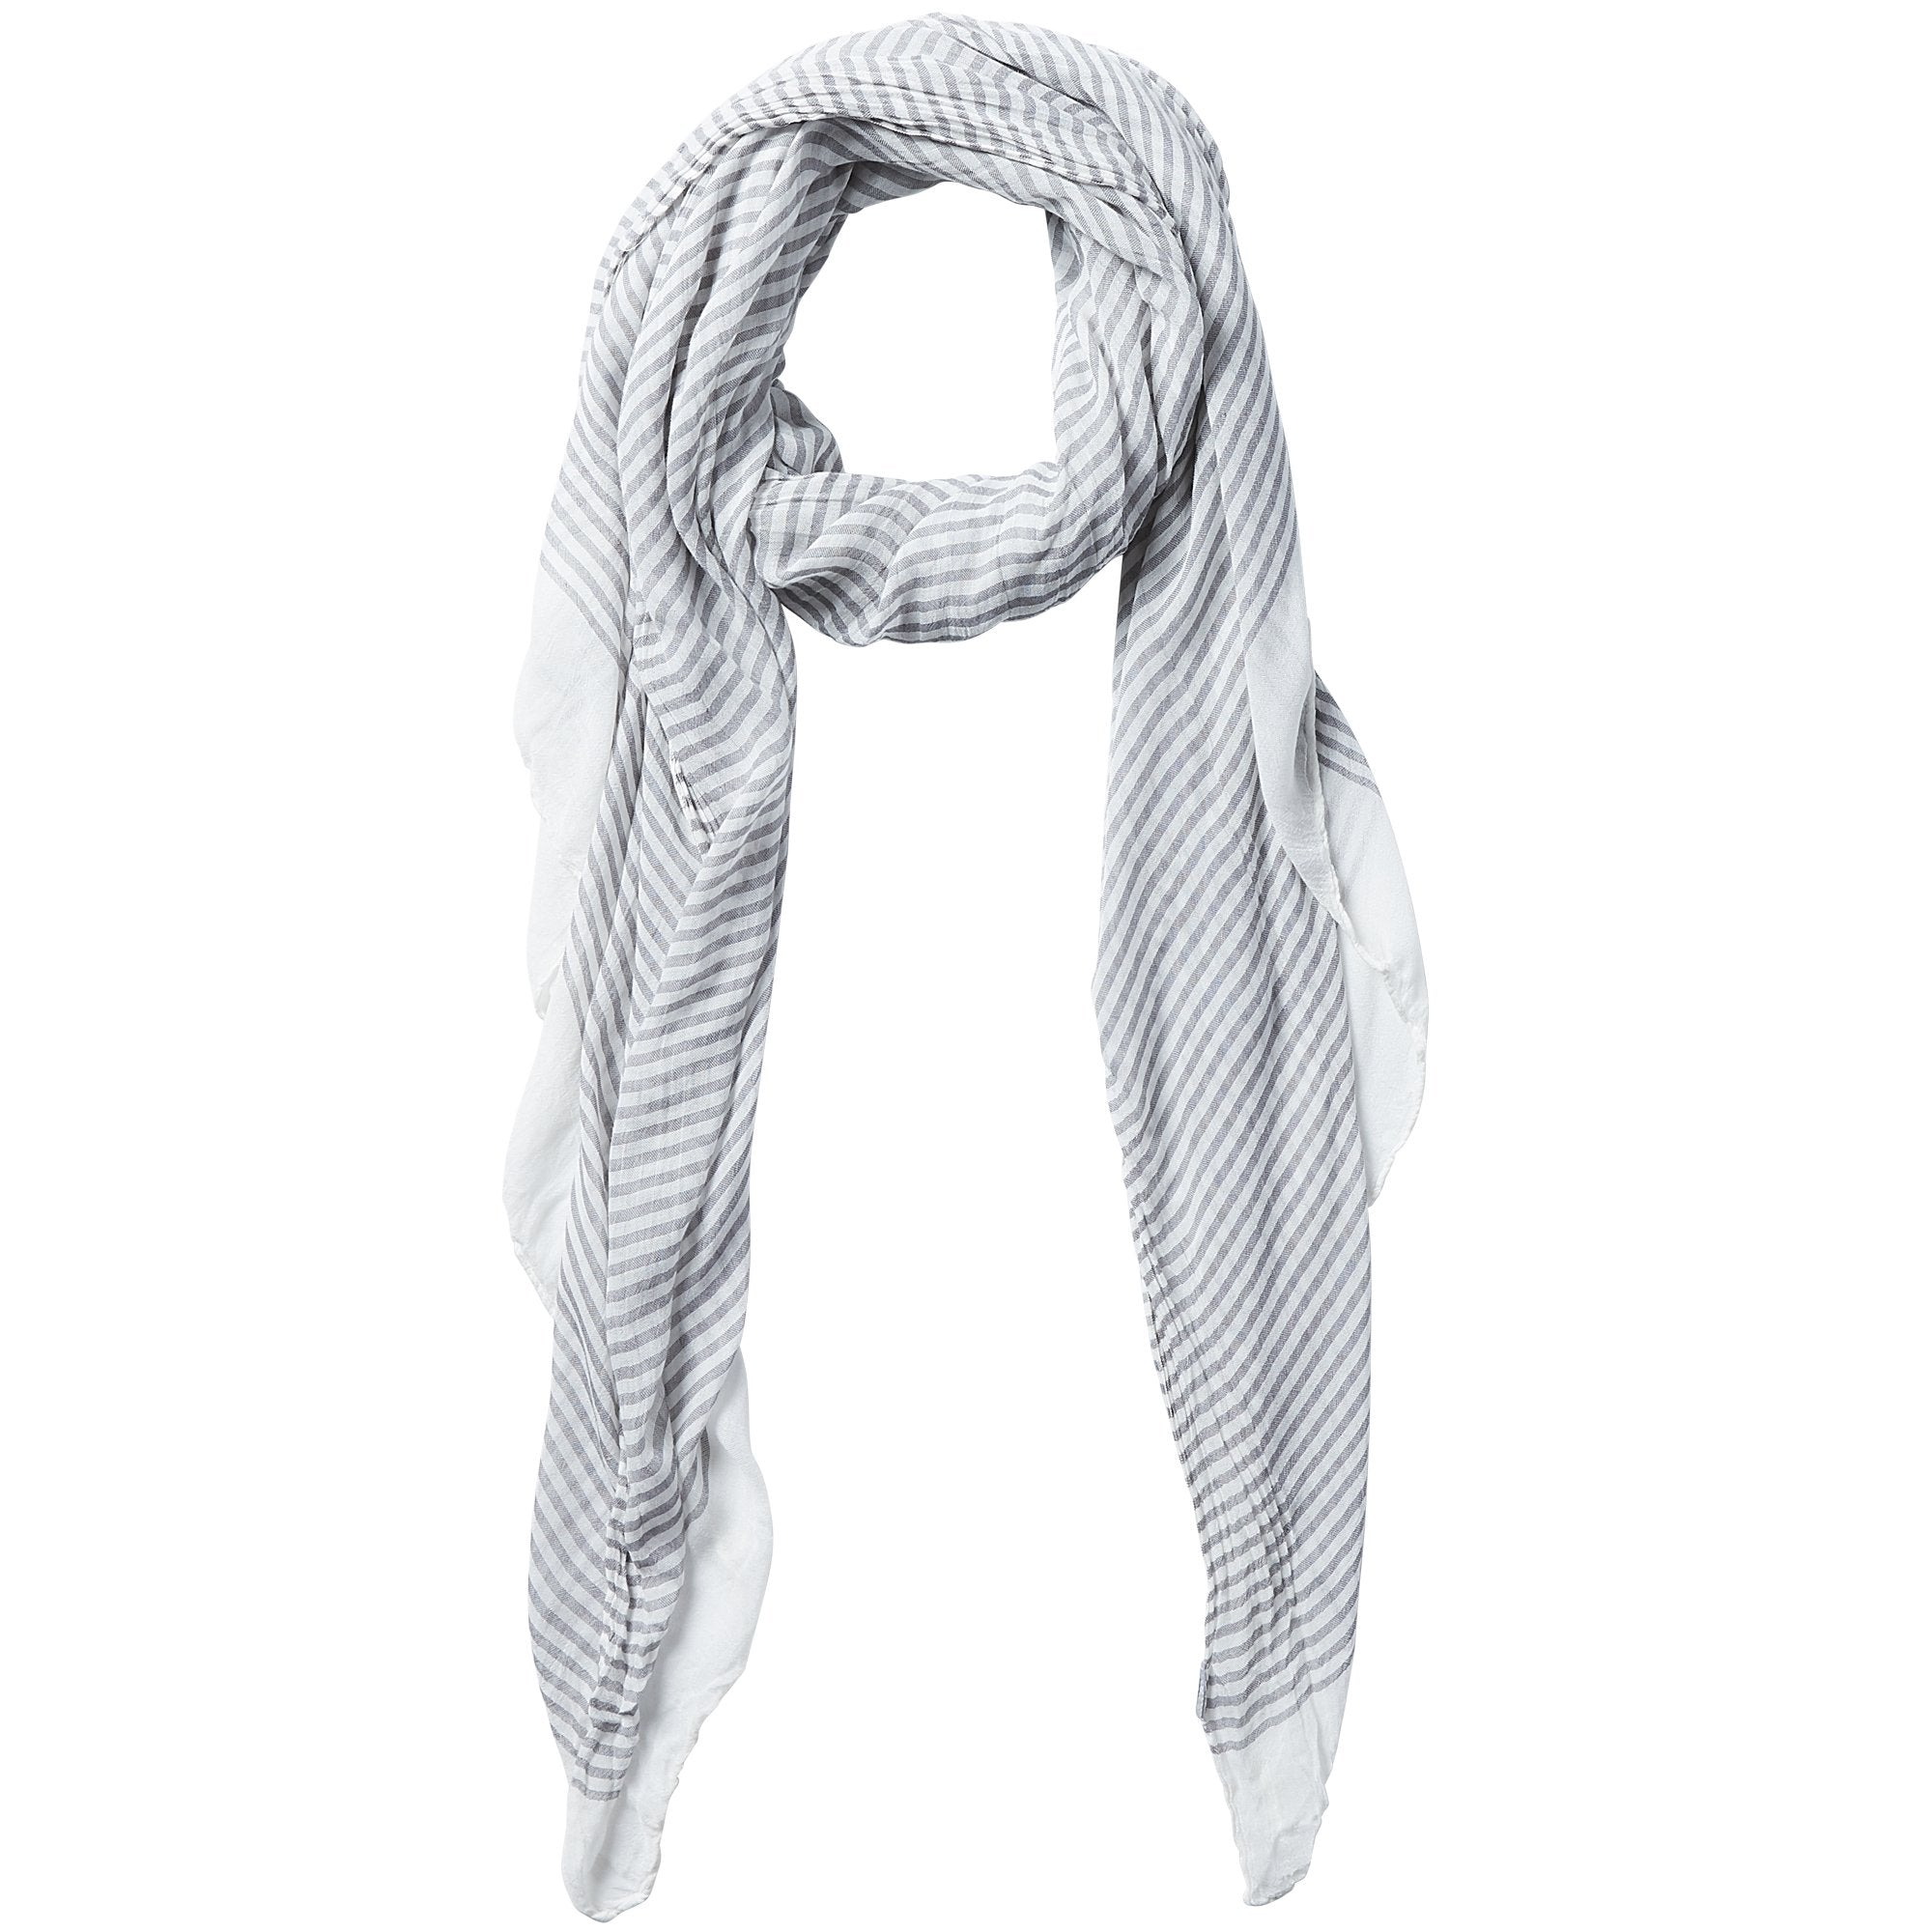 Insect Shield Scarf - Gray Tiny Stripe